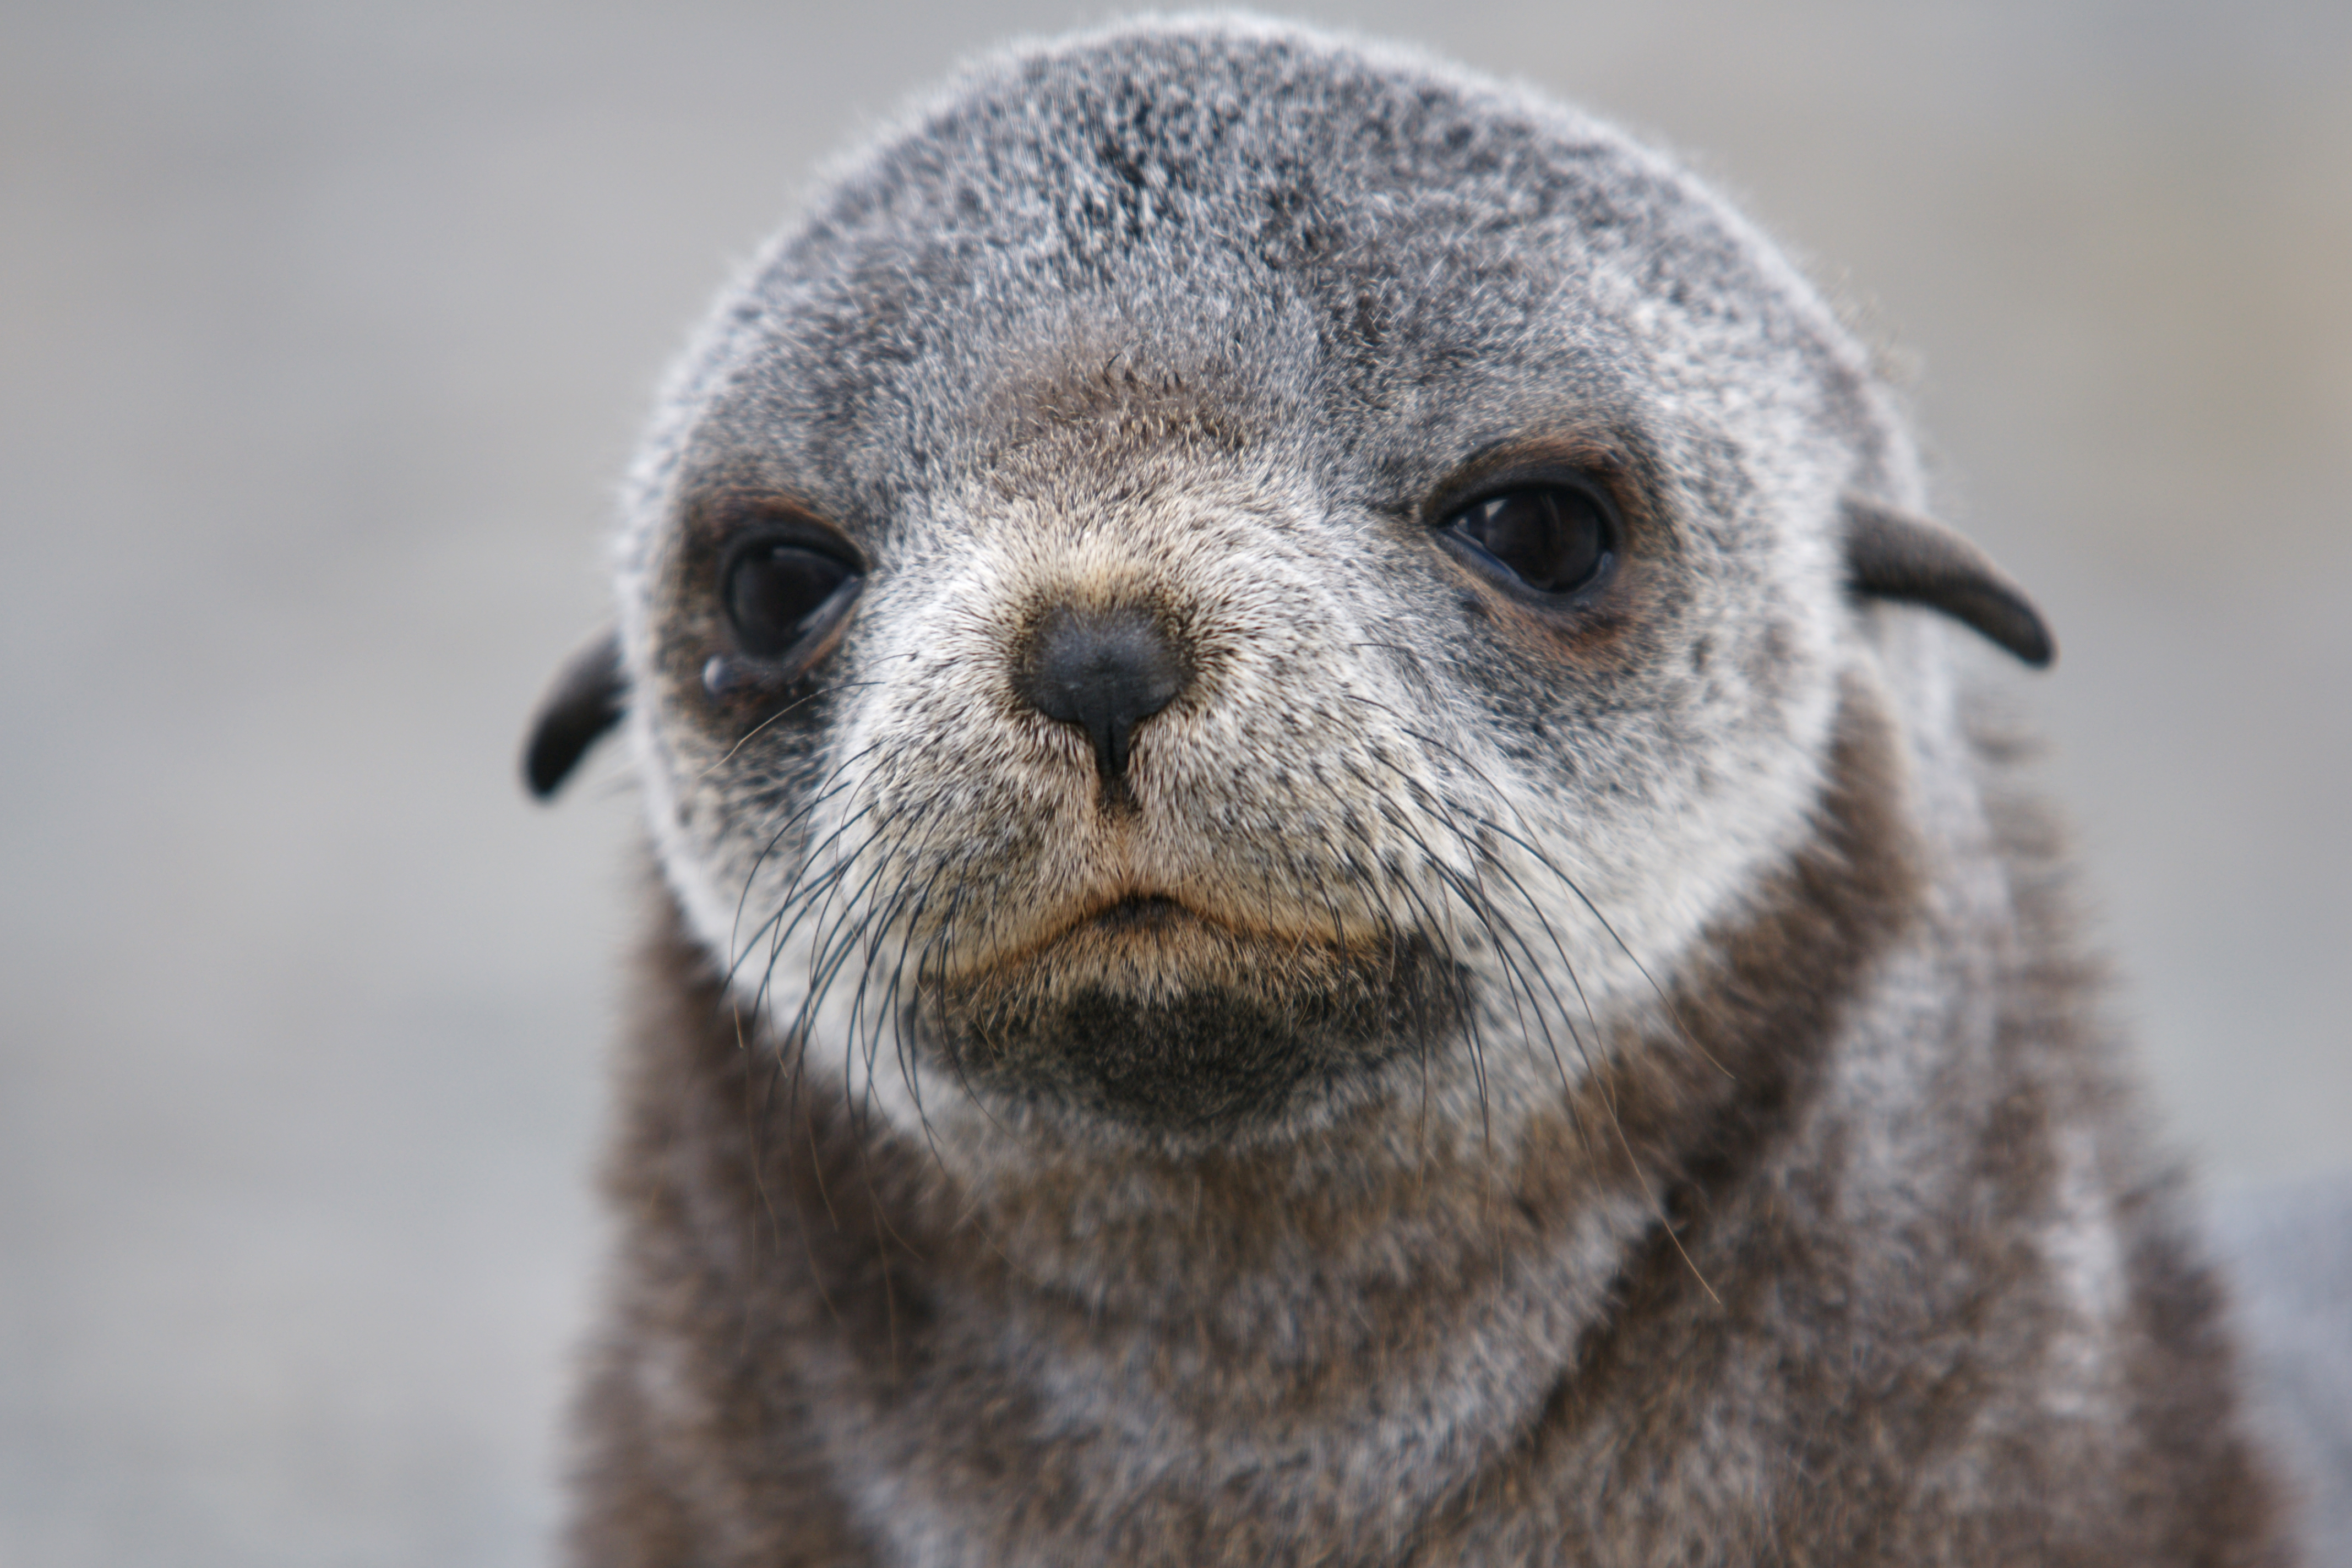 New Zealand seals: Six baby seals were beheaded and dumped